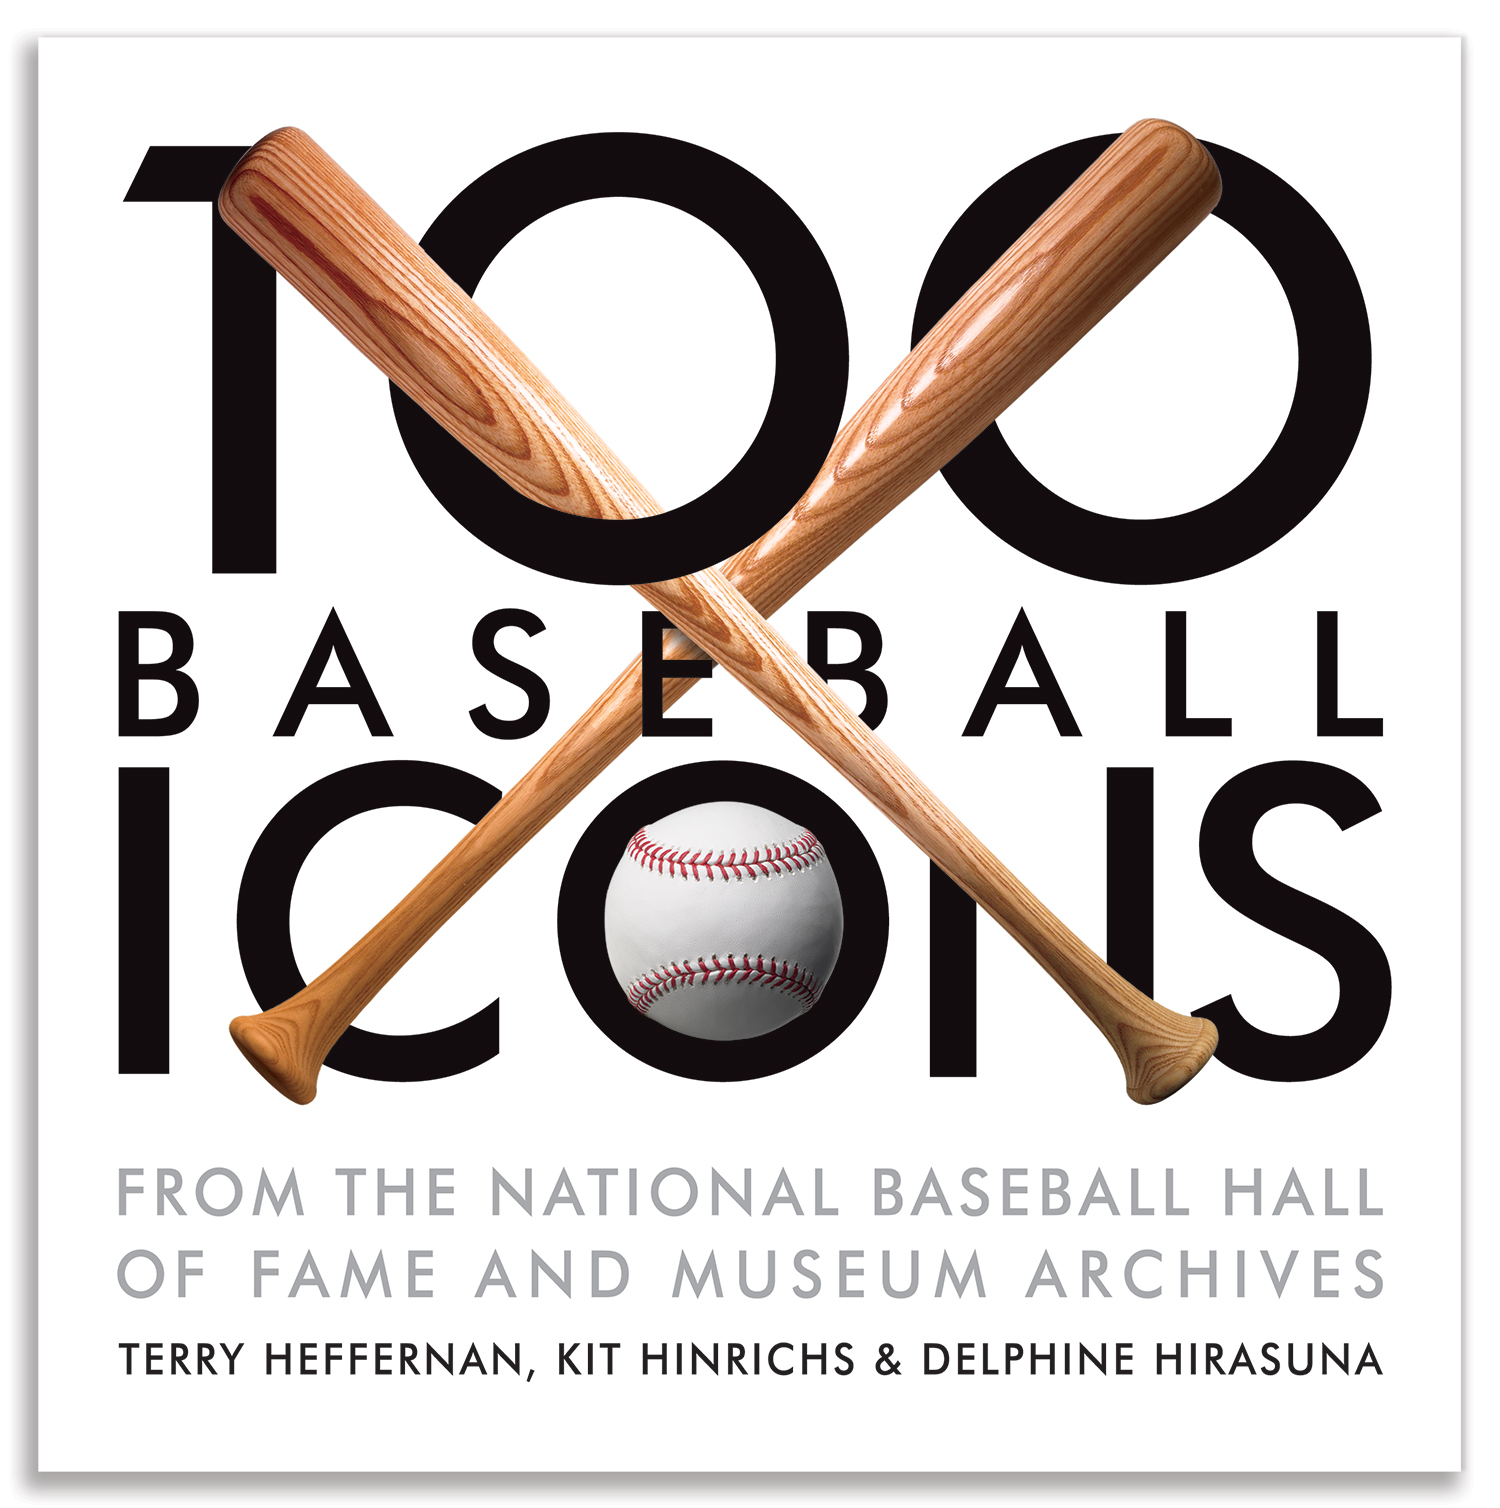 100 Baseball Icons from the National Baseball Hall of Fame and Museum Archives